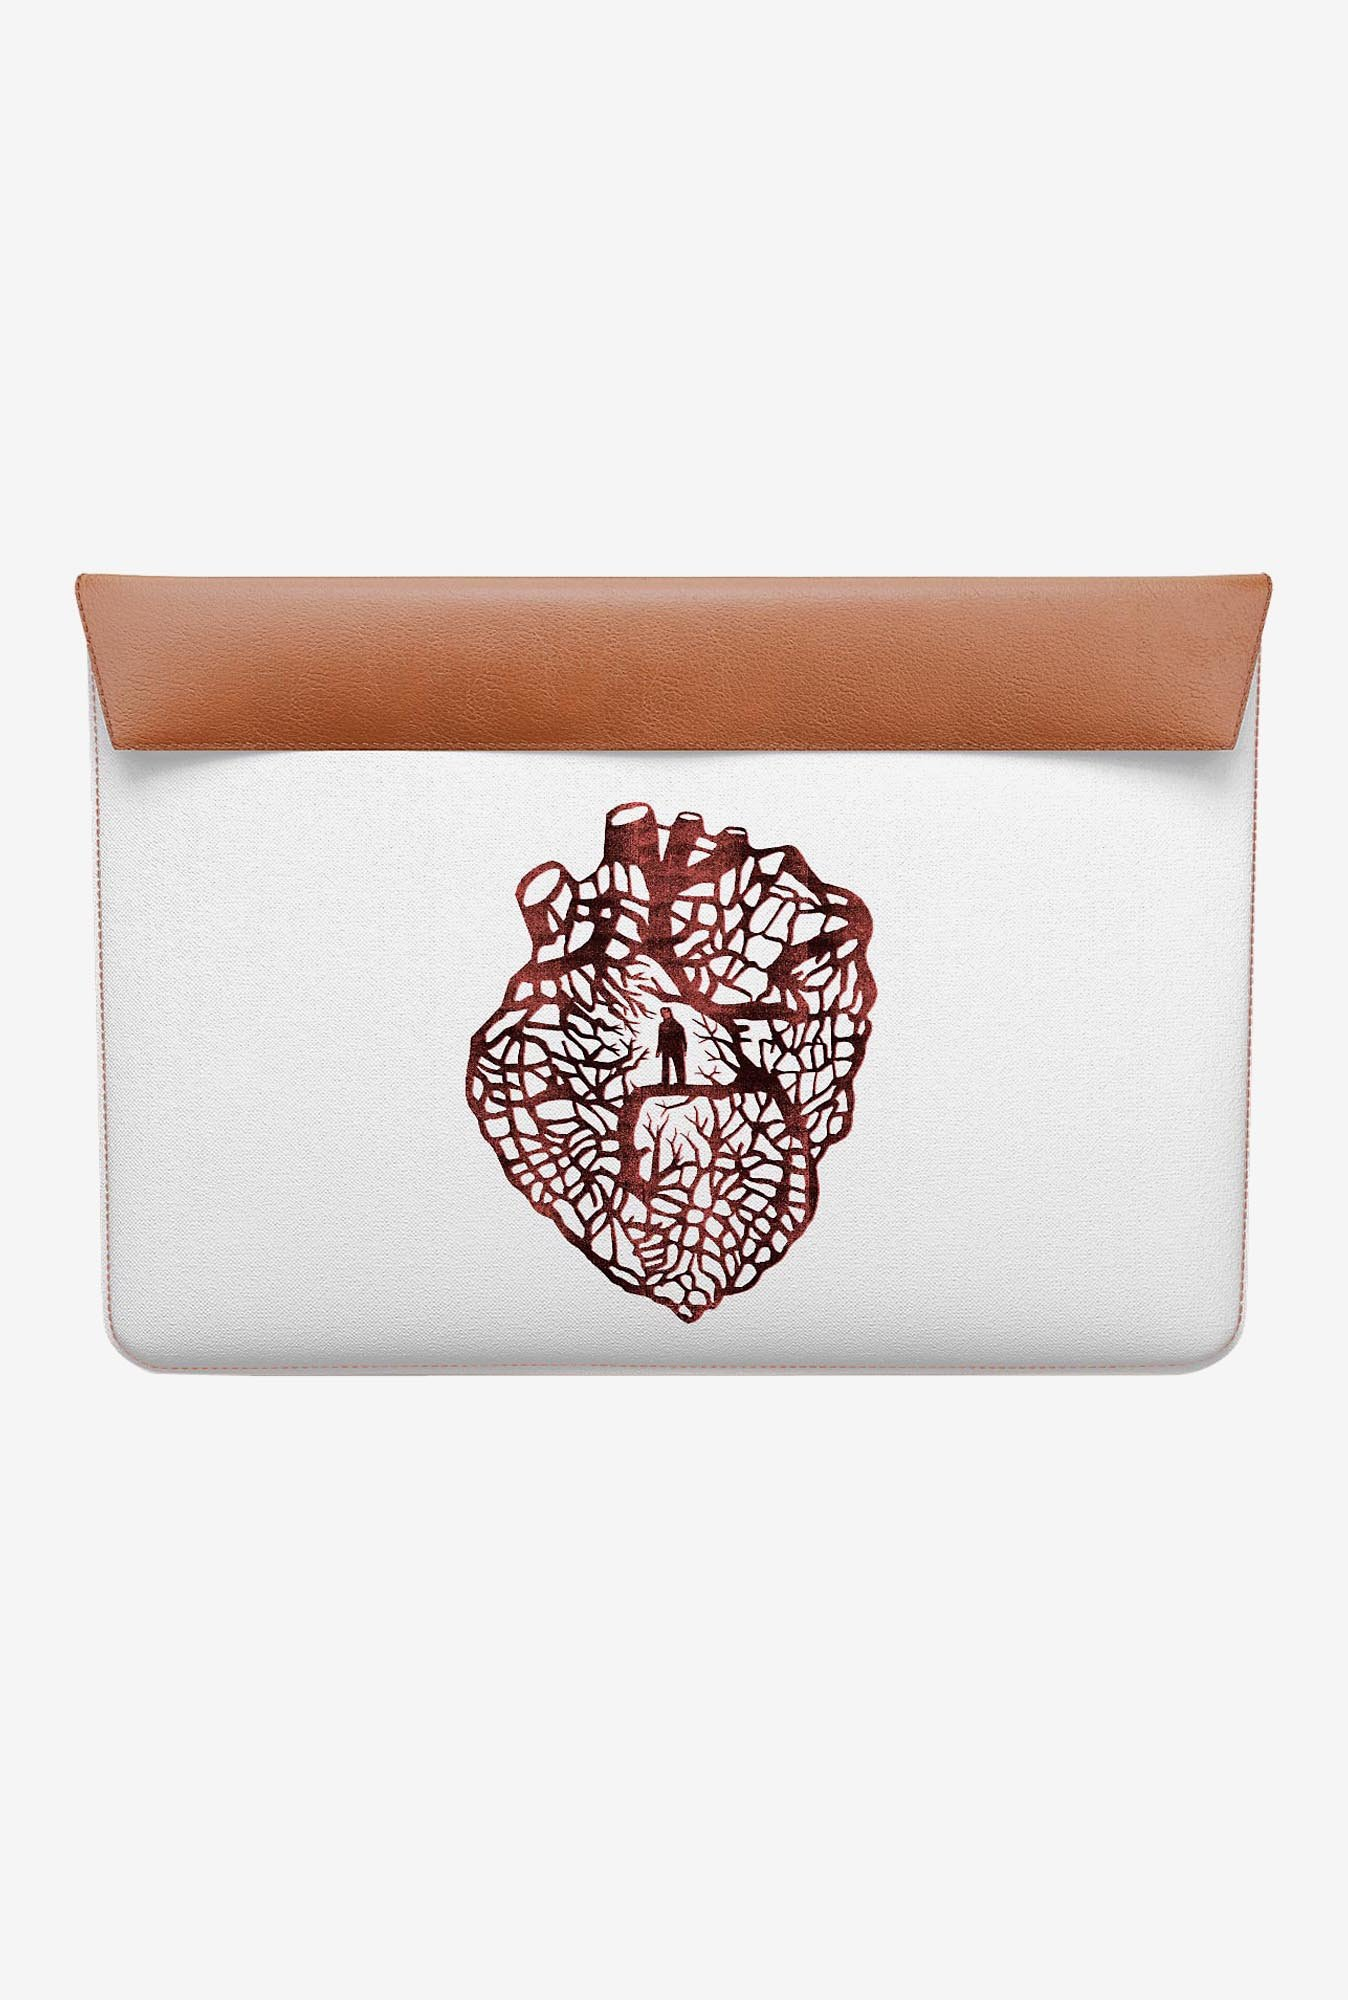 DailyObjects Maze Heart MacBook 12 Envelope Sleeve